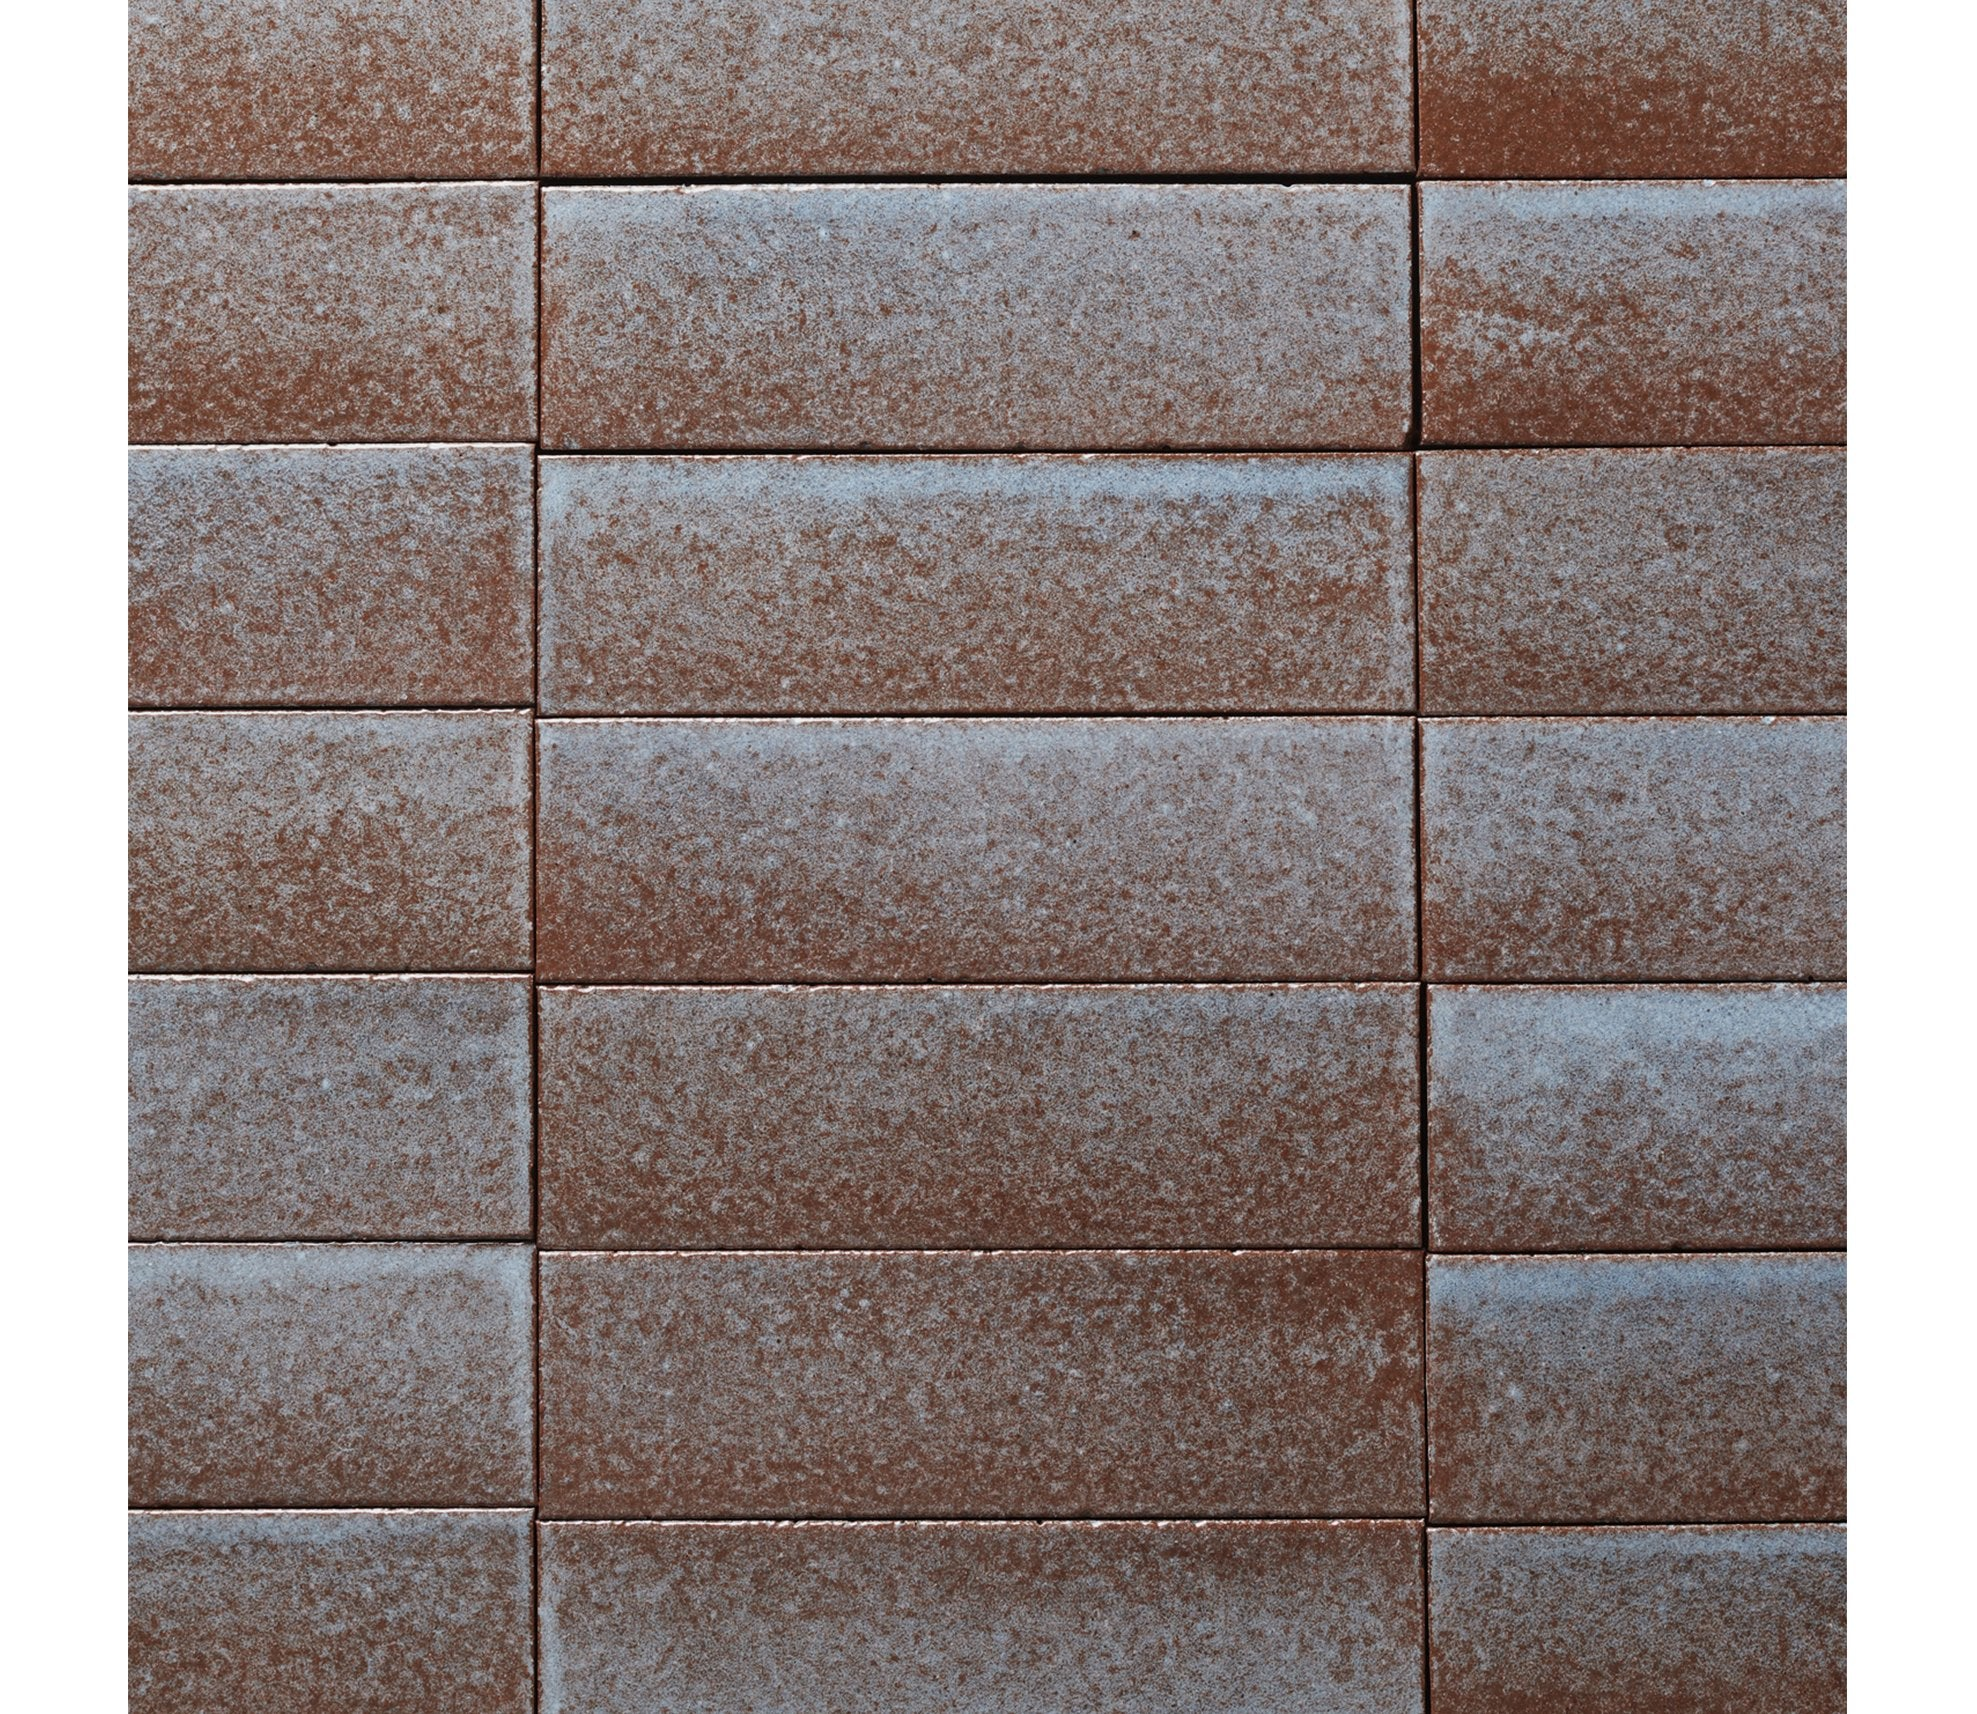 Terra Firma Glazed Bricks Product Image 42